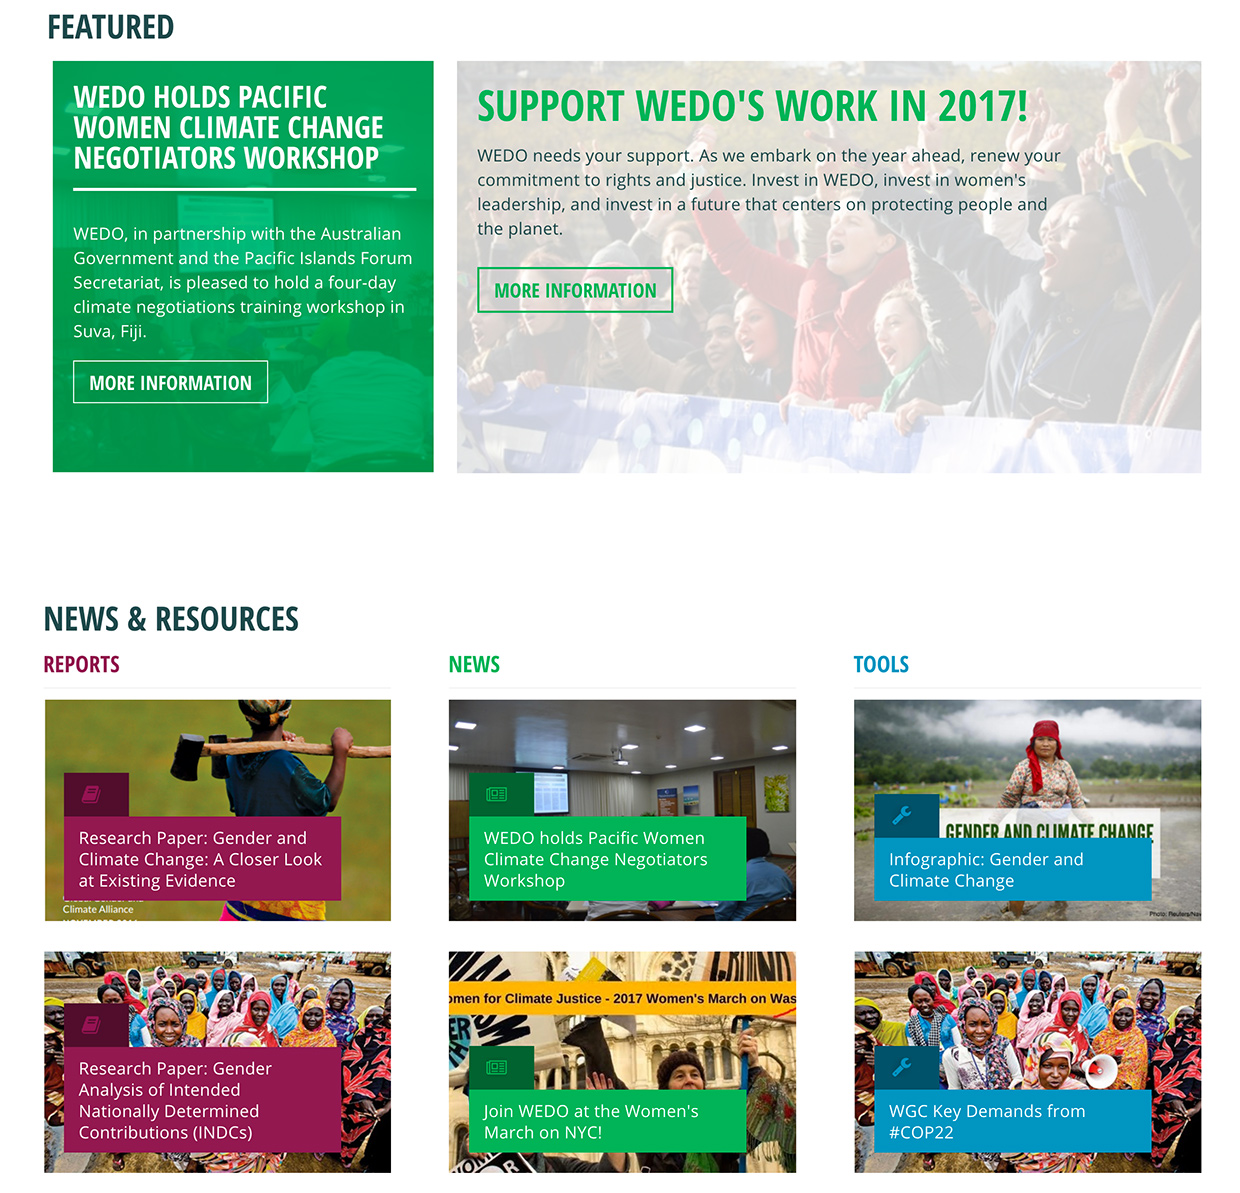 Women's Environment & Development Organization (WEDO): WEDO Featured Content